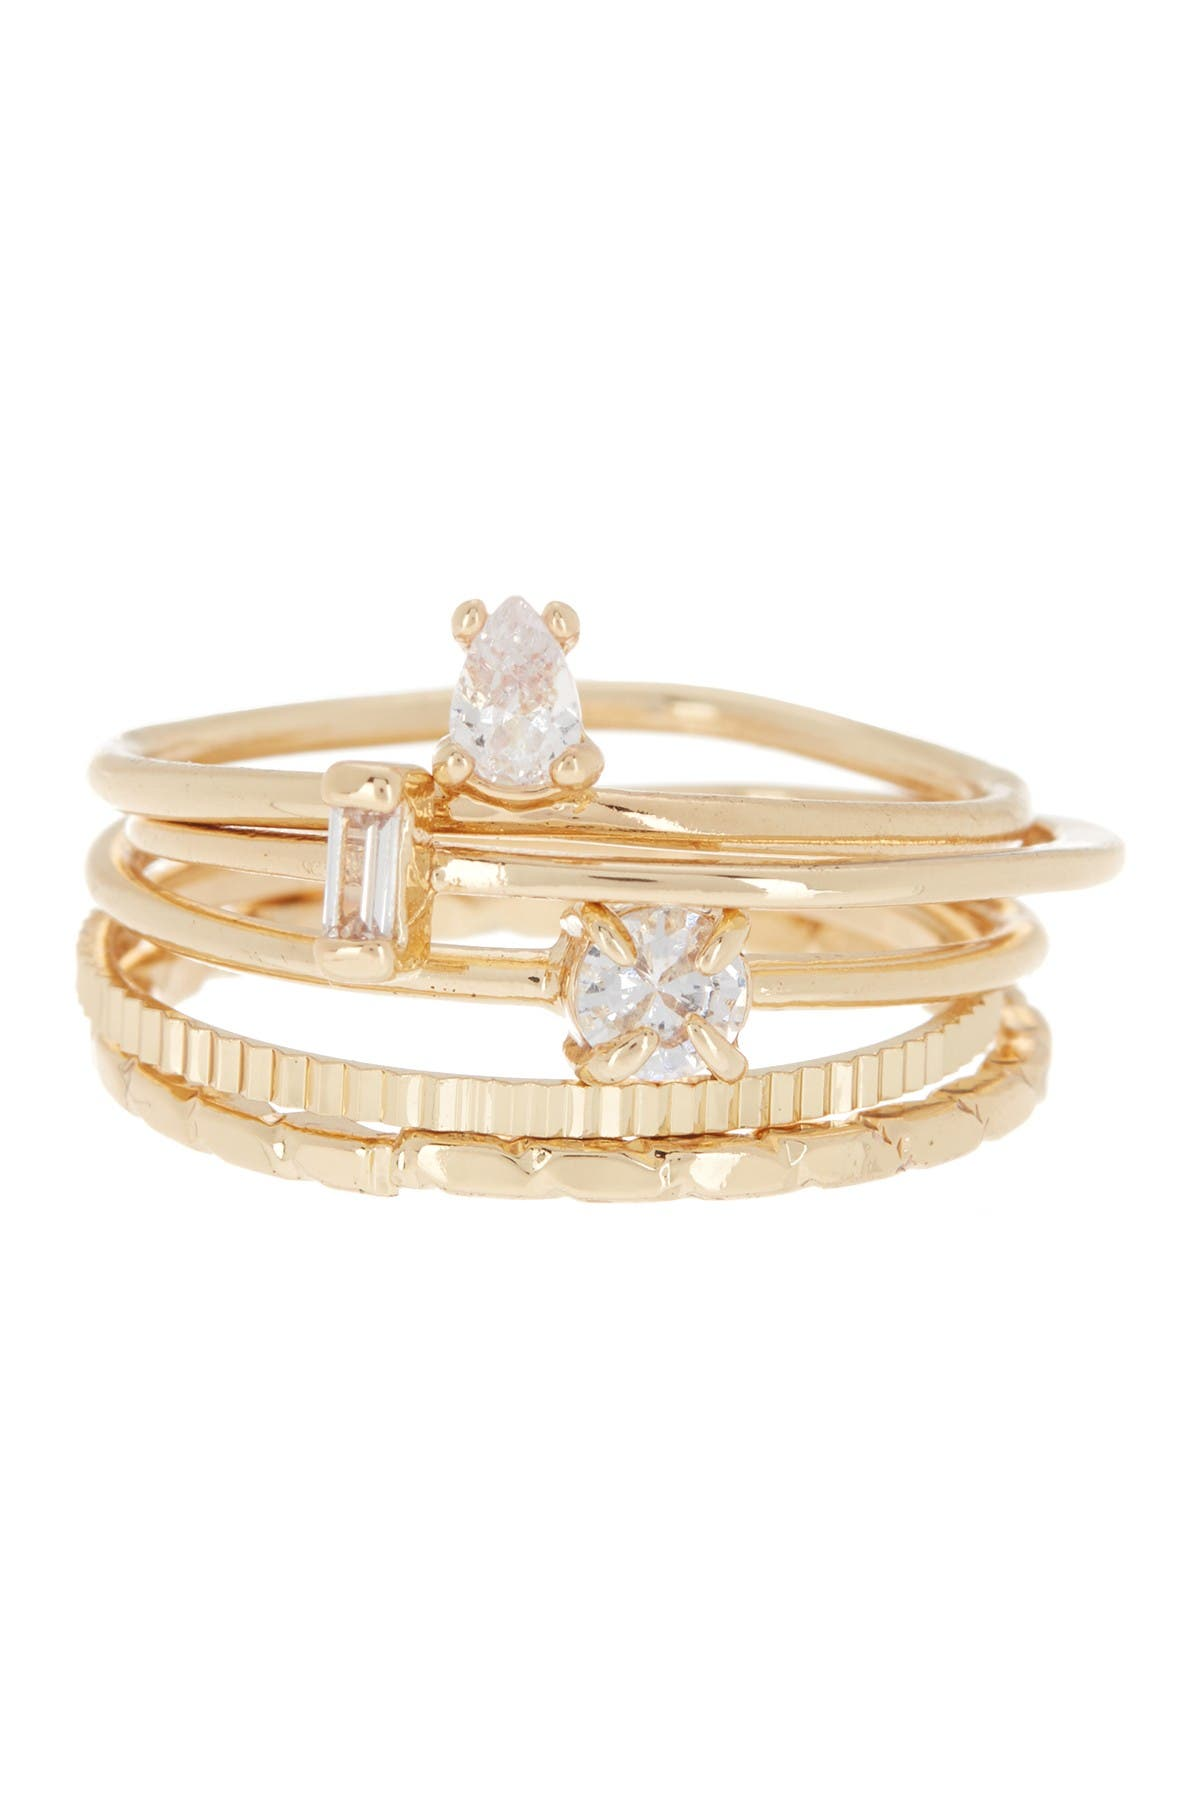 Image of Loren Olivia Dainty Bling Stackable Ring Set